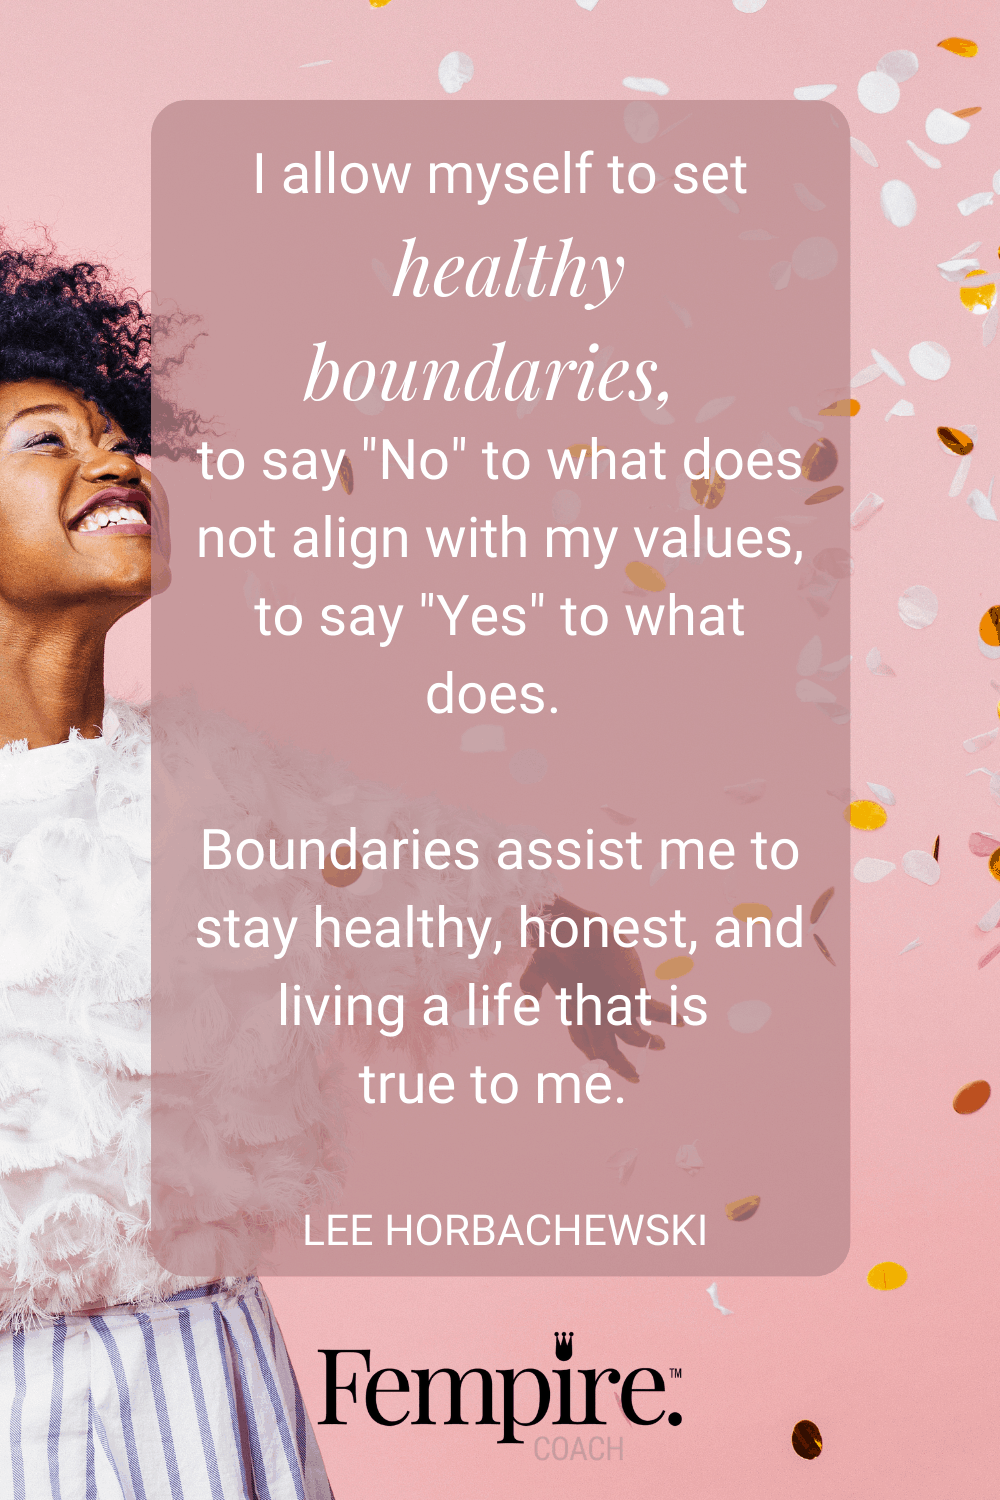 As much as we love our families, they're often the ones who can trigger the biggest emotional responses in us and we need to have strong, healthy boundaries to maintain our well-being. Read on to discover my tips for instilling strong personal boundaries. #fempire #fempirecoach #stroungboundaries #healthyboundaries #womensupportingwomen #boundaries #relationships #selfcare #selflove #personalgrowth